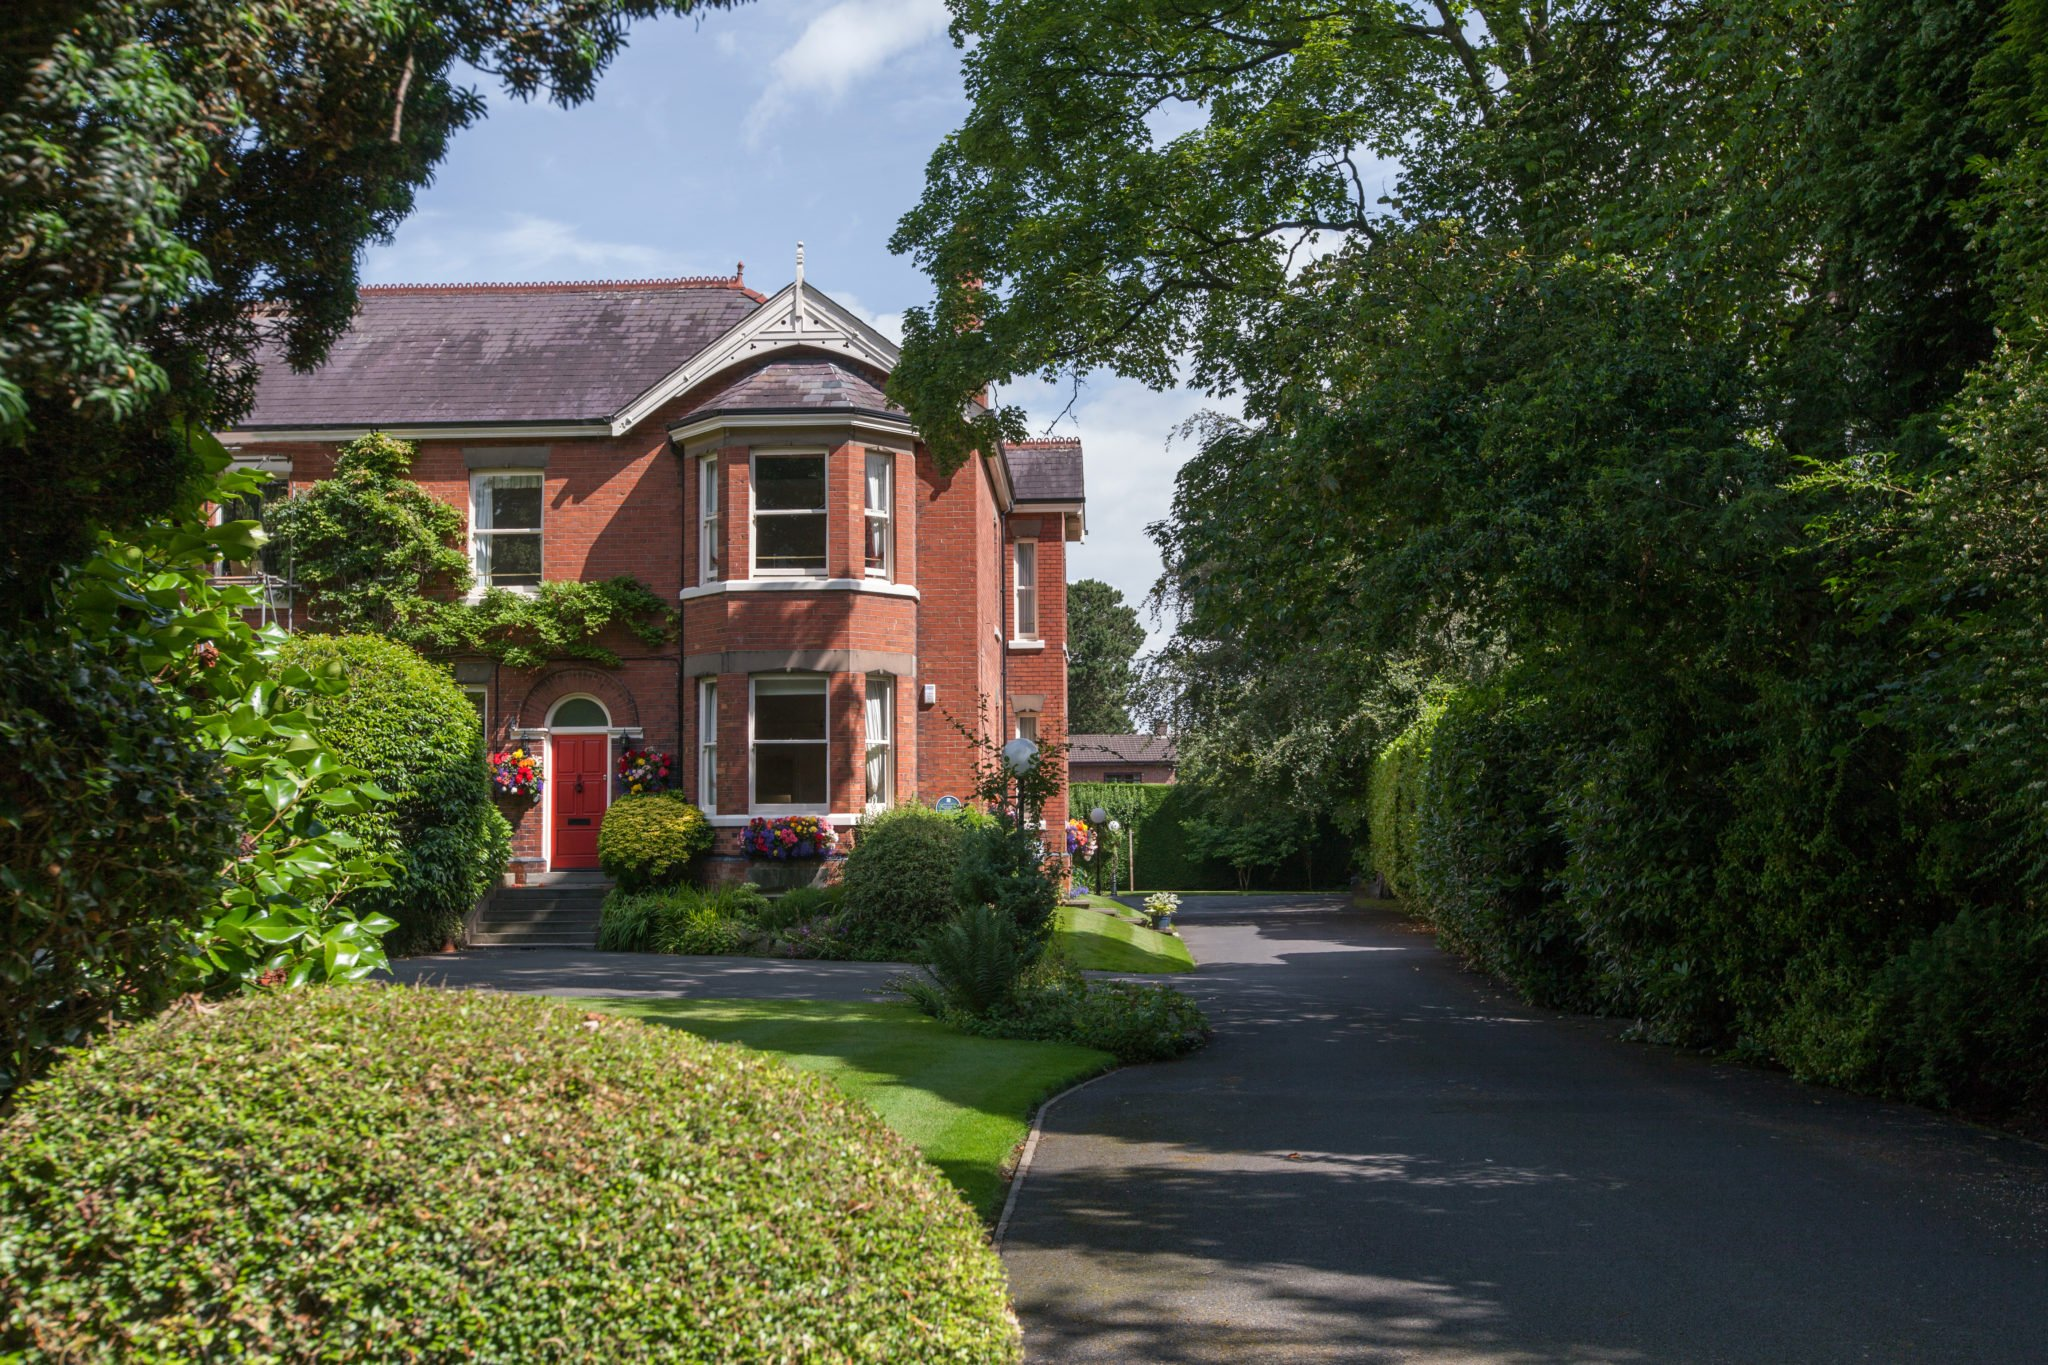 Knutsford-Serviced-Apartments-Cheshire-available-now!-North-England-Serviced-Accommodation-Manchester-Airport---Urban-Stay